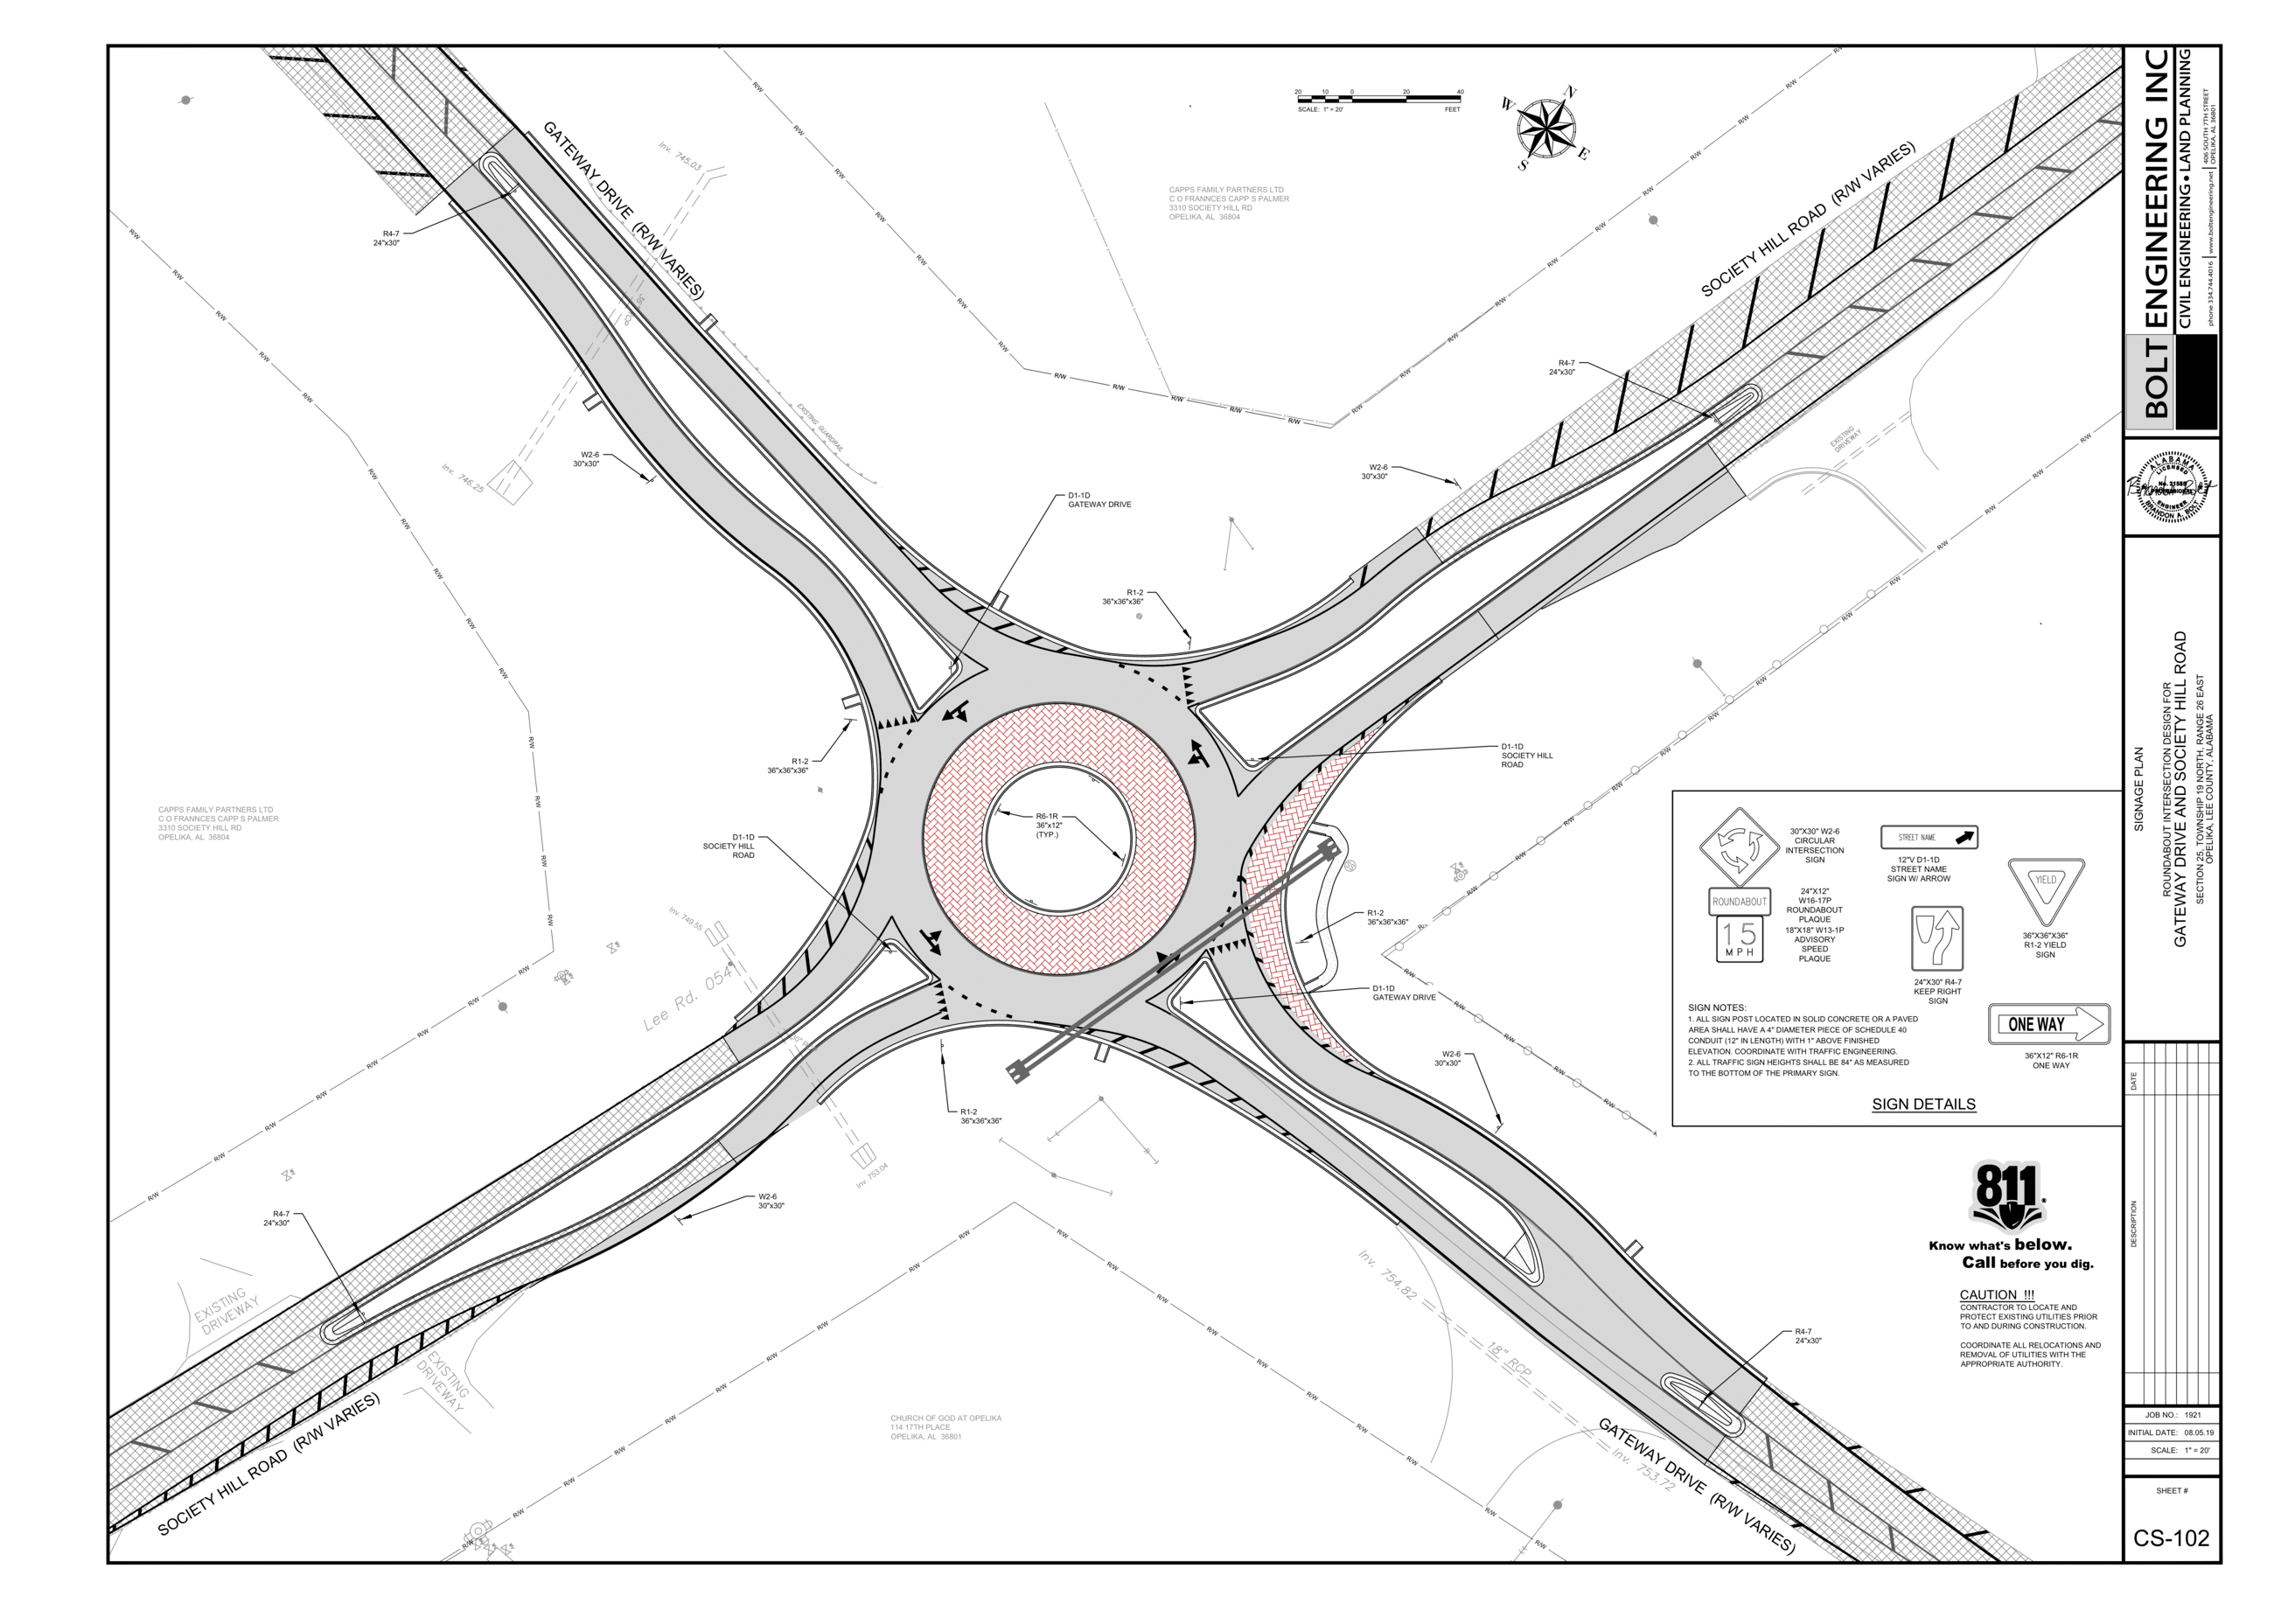 Roundabout traffic control plans